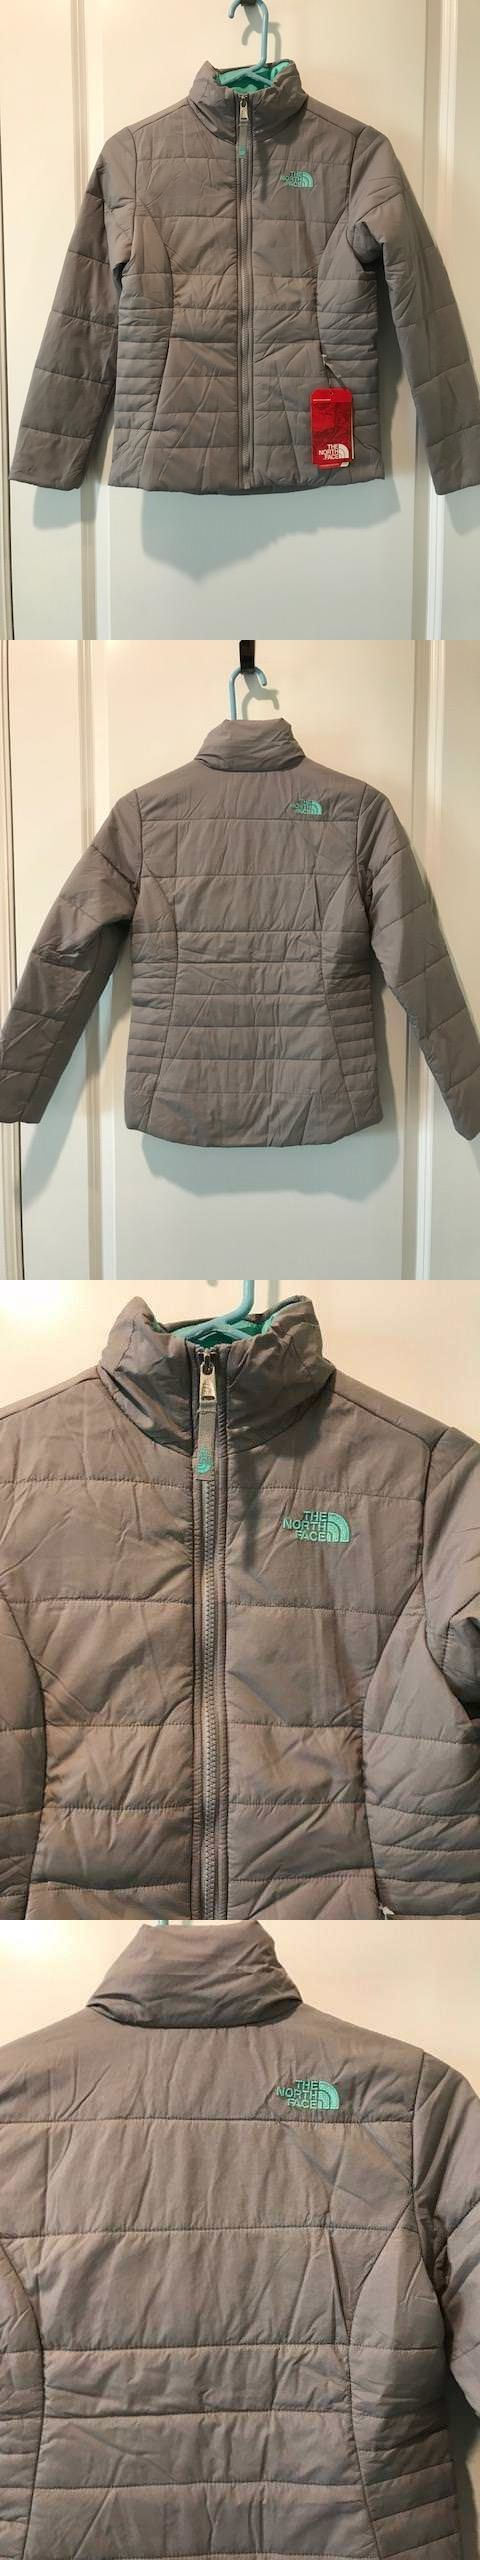 fc0d8f105 Outerwear 51580: The North Face Girls Harway Insulated Jacket Nwt ...